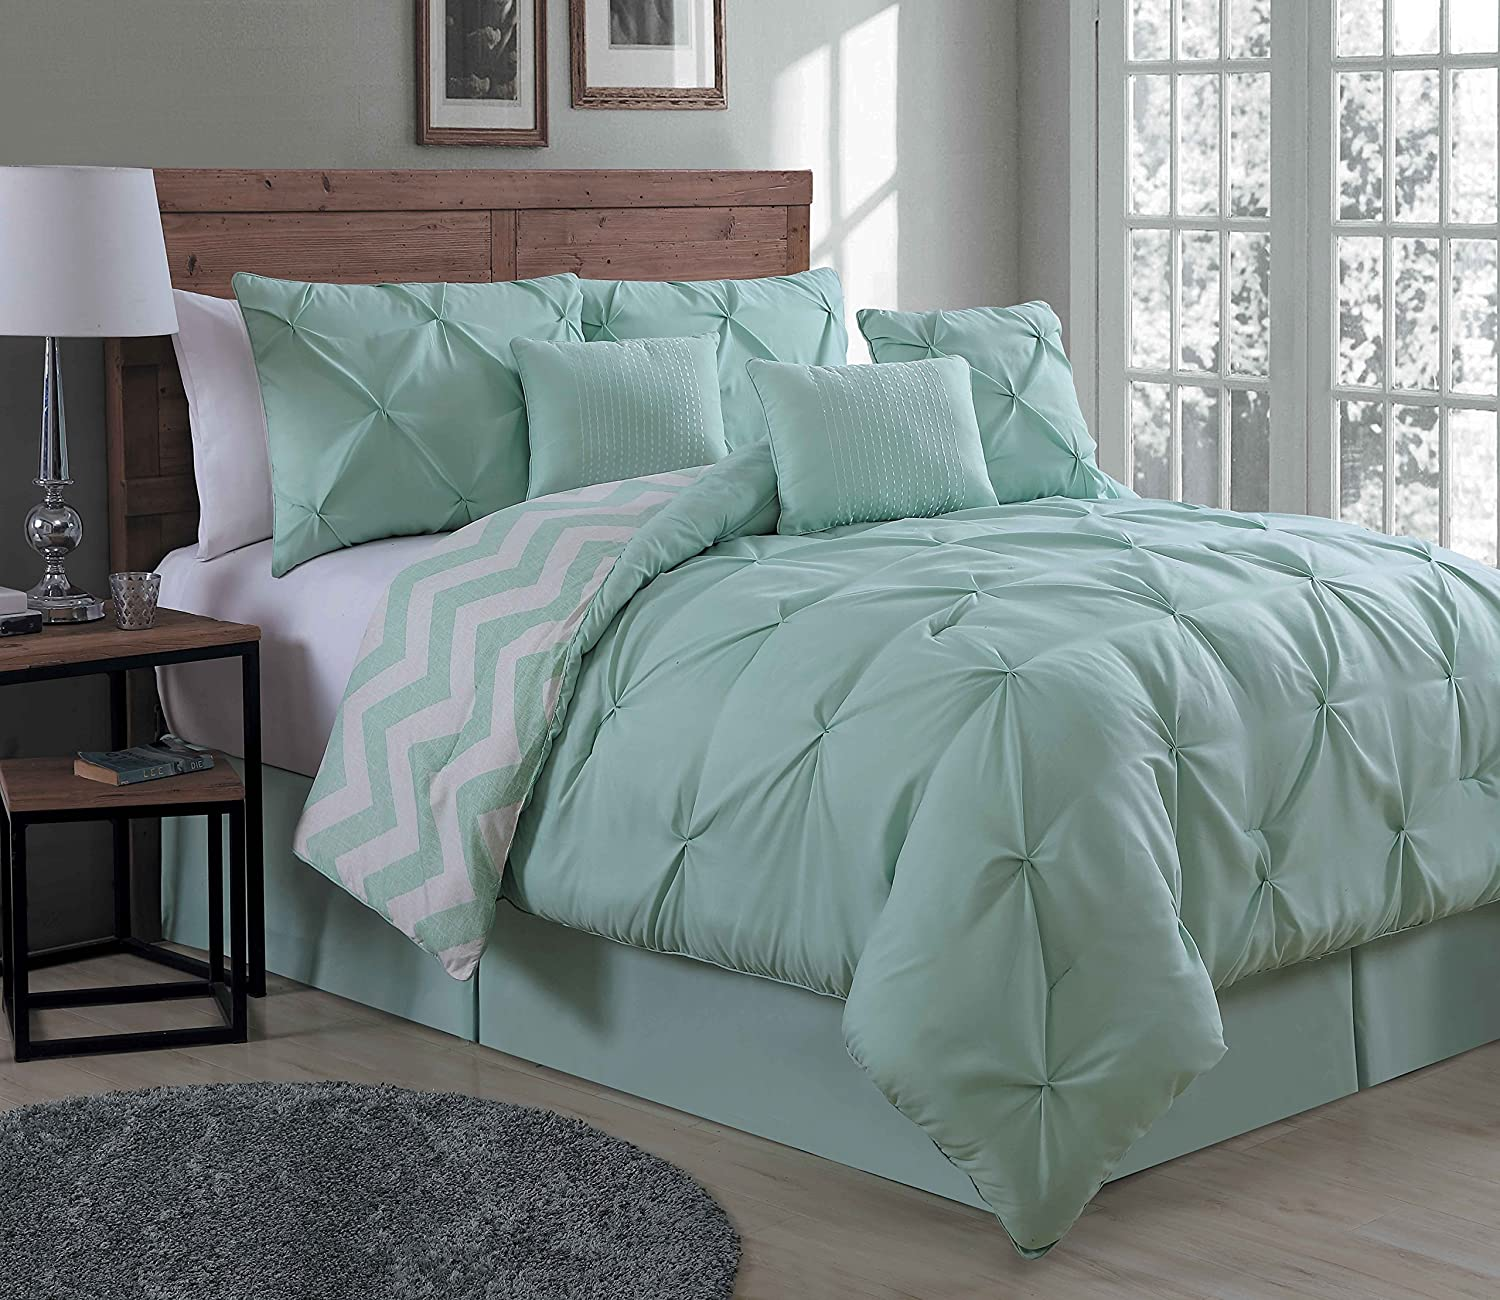 mintdding photo daybed plaid sets covers purple green bed couch navy blue twin set bedding comforter xl sage sheets and fascinating lime mint bedroom amazing cover remarkable seafoam